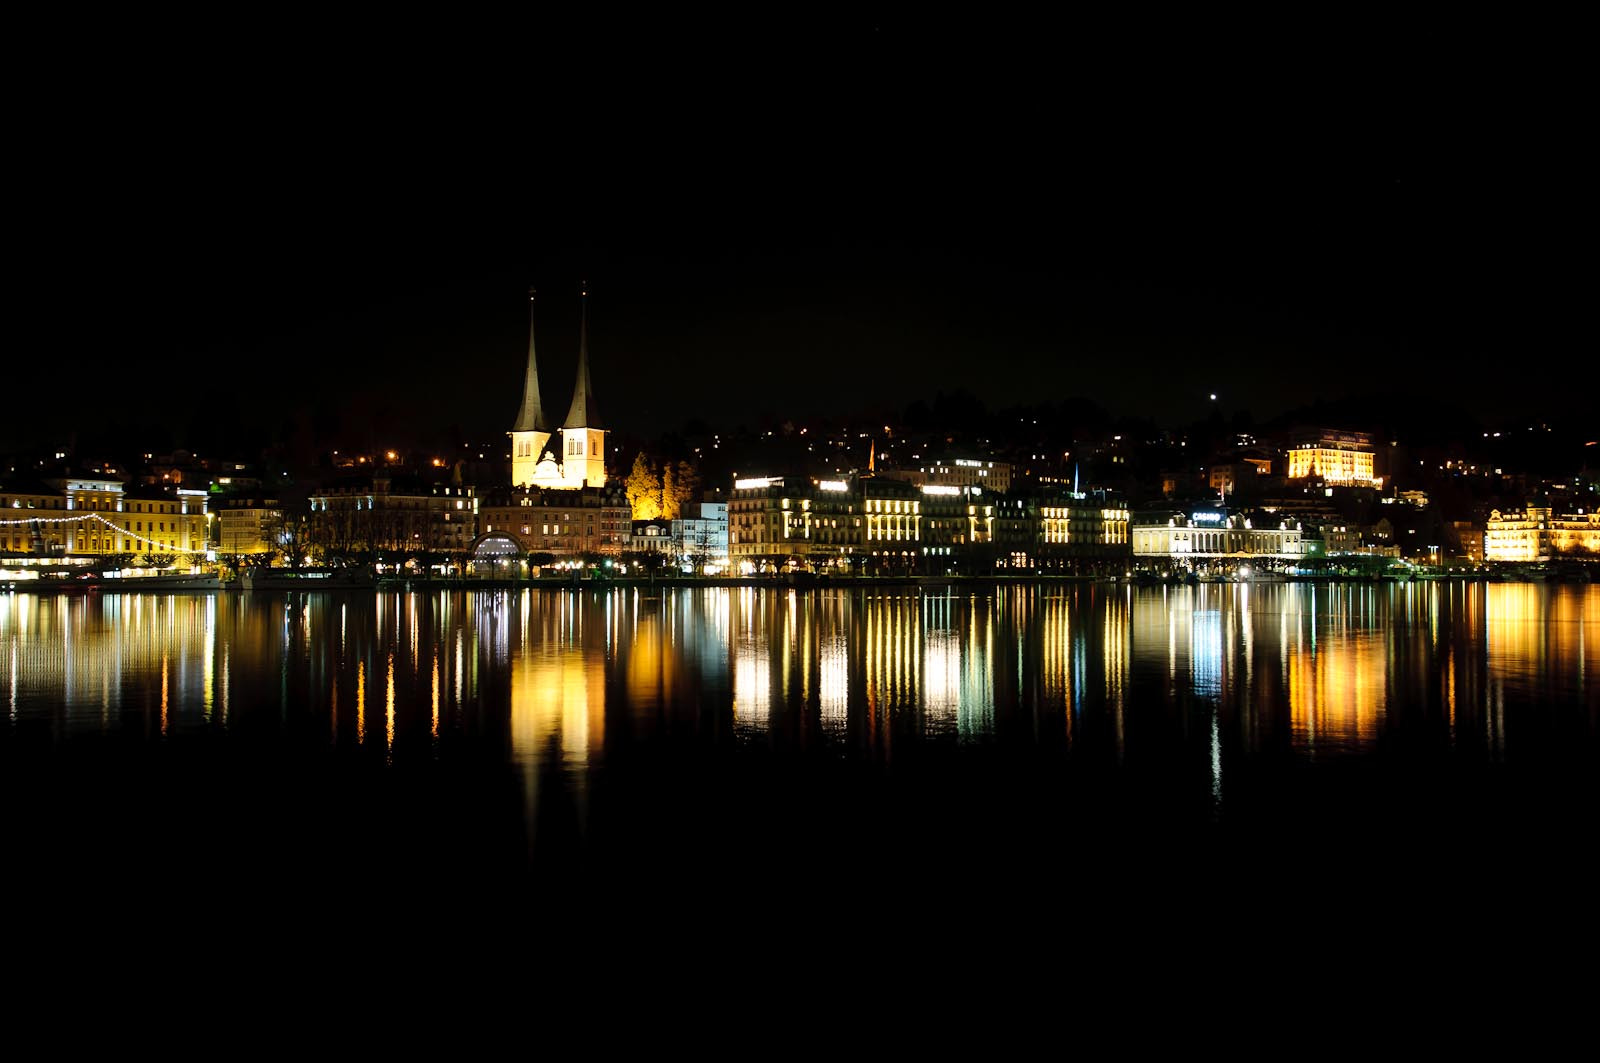 Photograph Lucerne at night by Martin Weibel on 500px